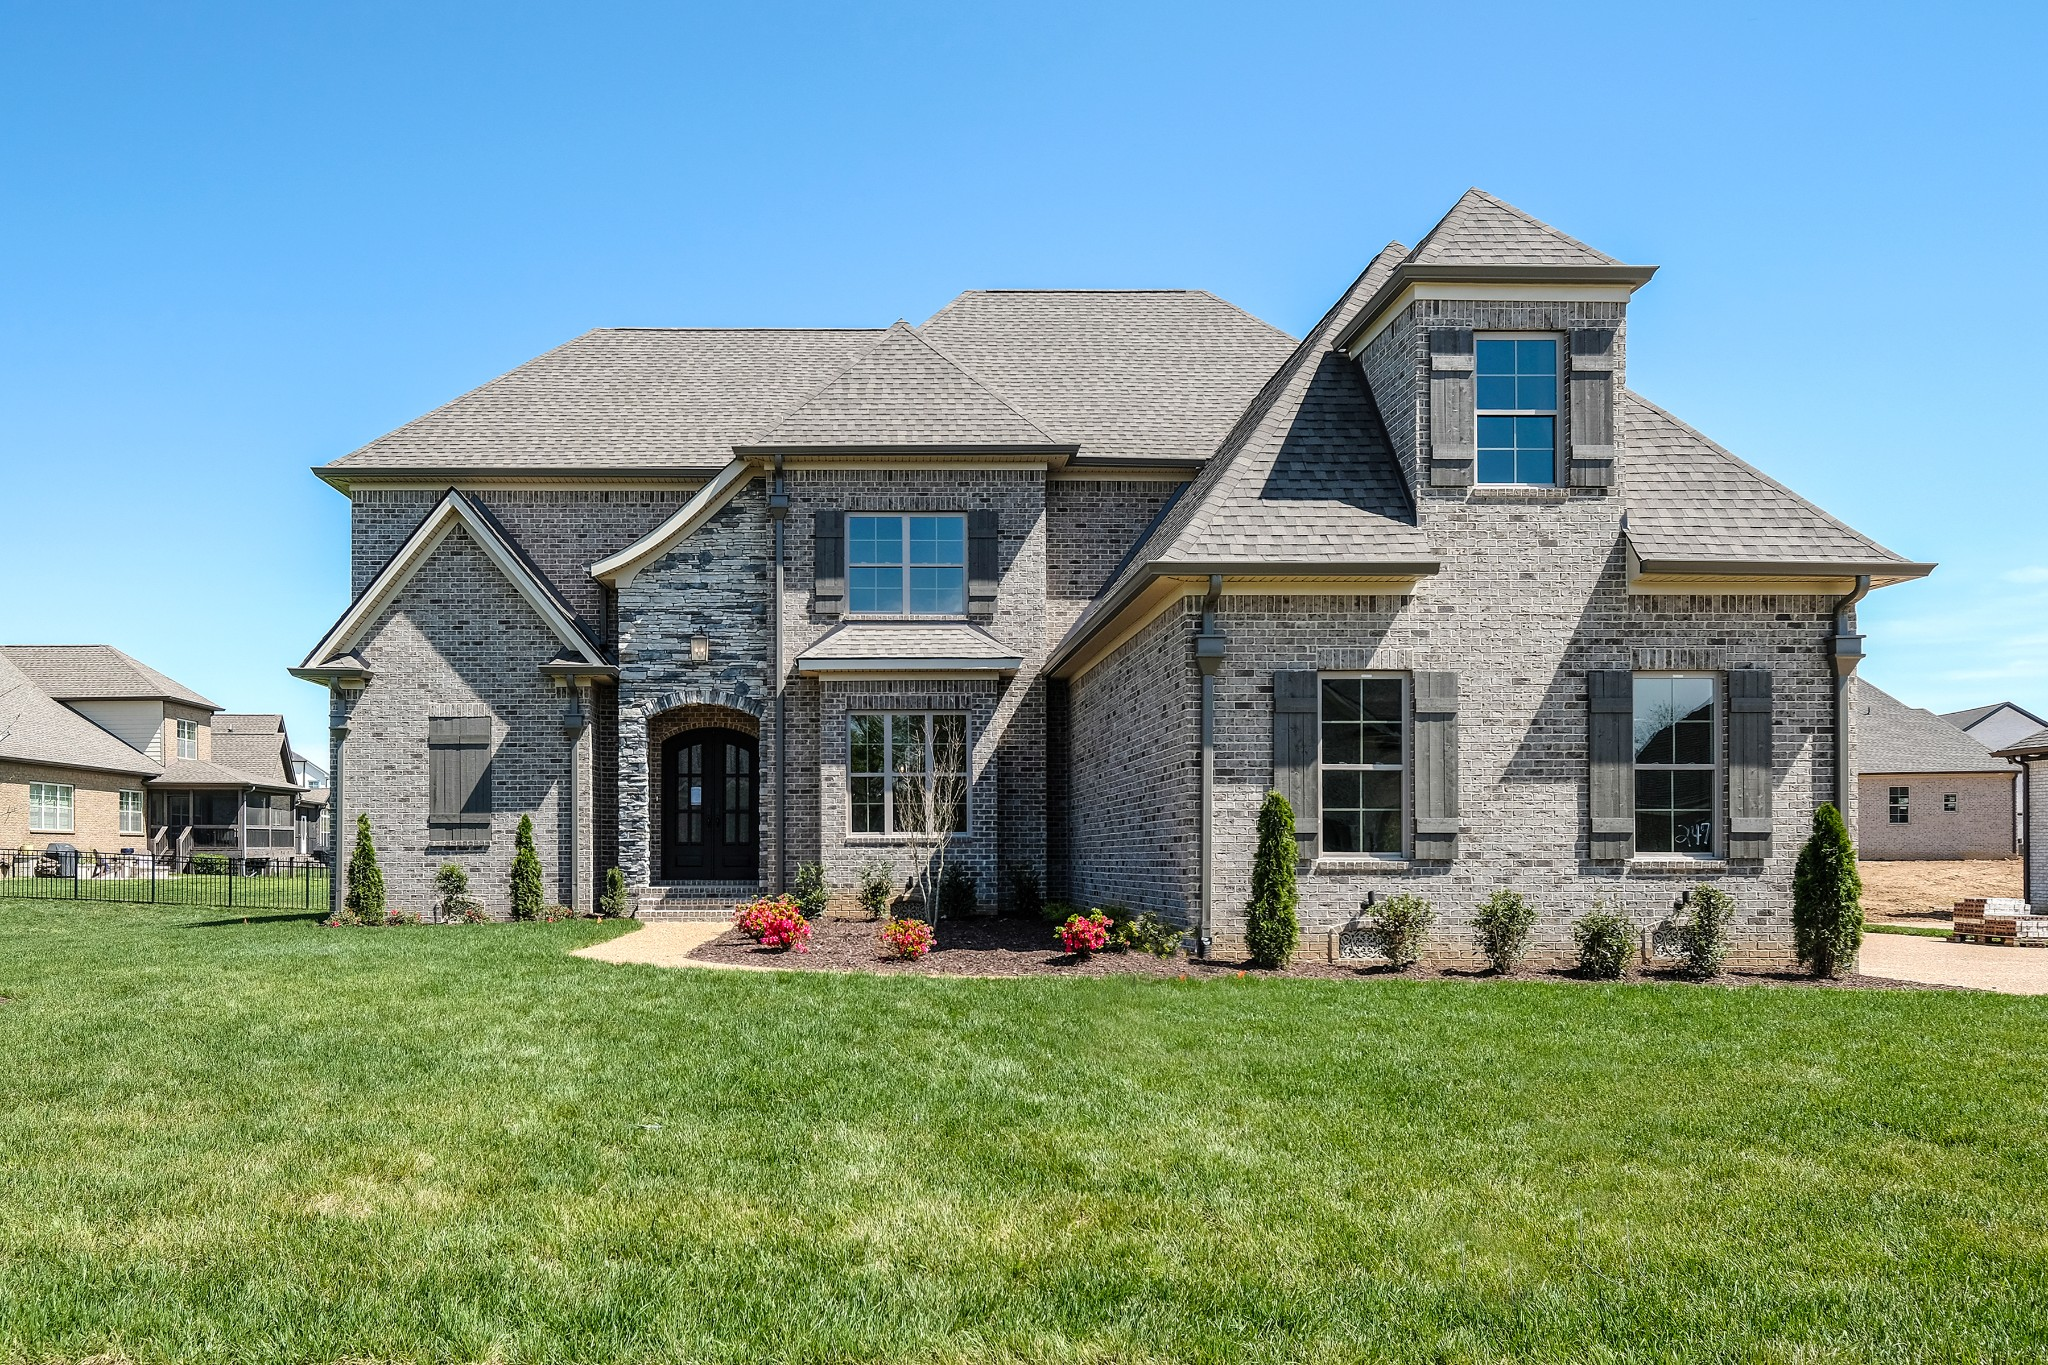 2060 Autumn Ridge Way (Lot 247), one of homes for sale in Spring Hill